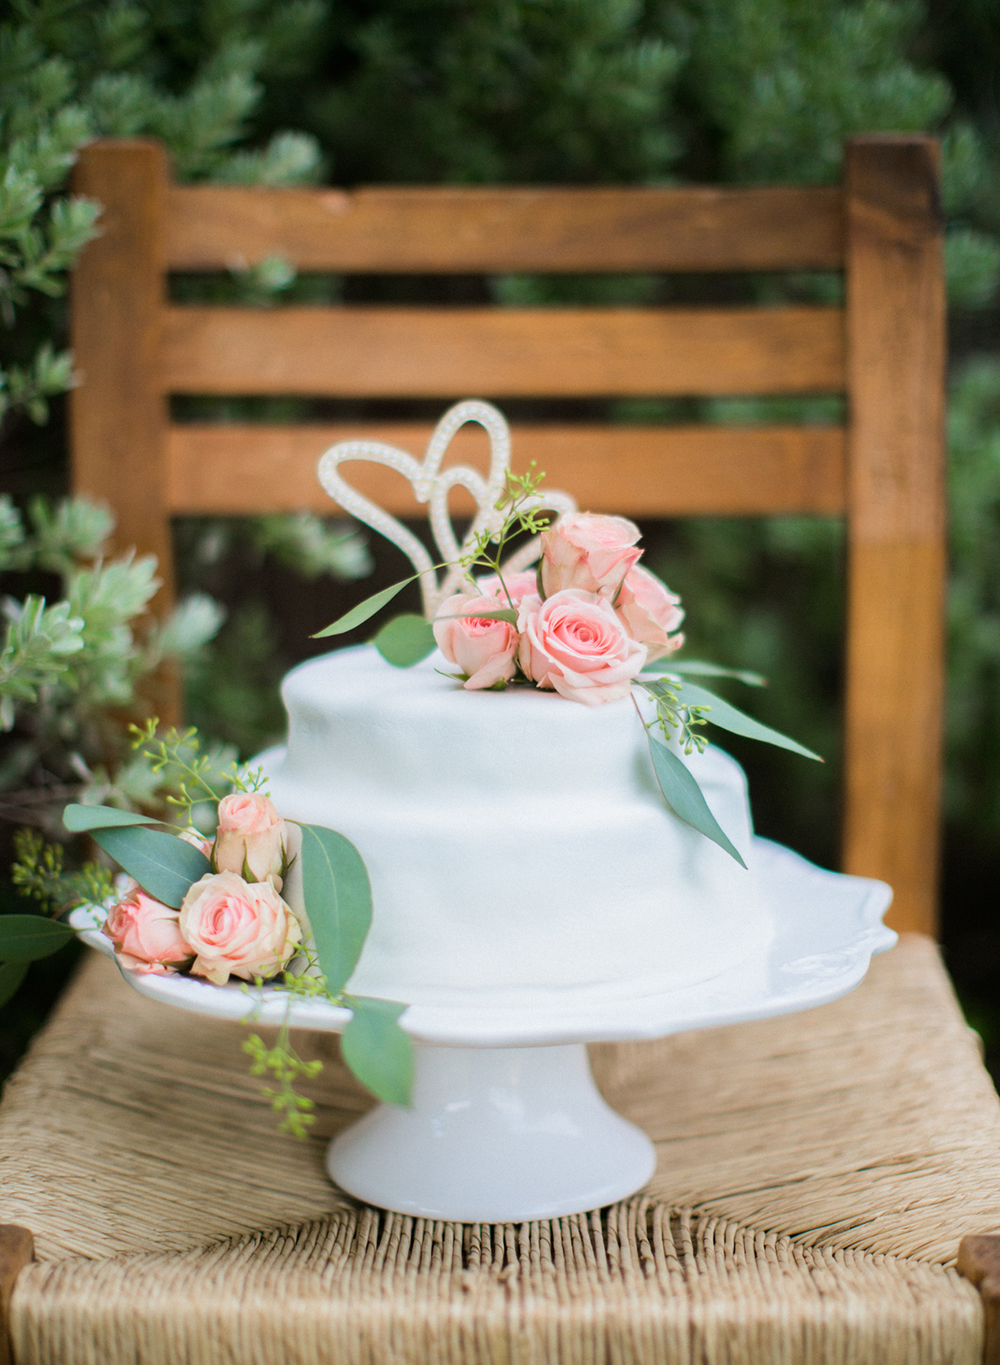 57-Lubbock-Dallas-Austin-WeddingCake.jpg